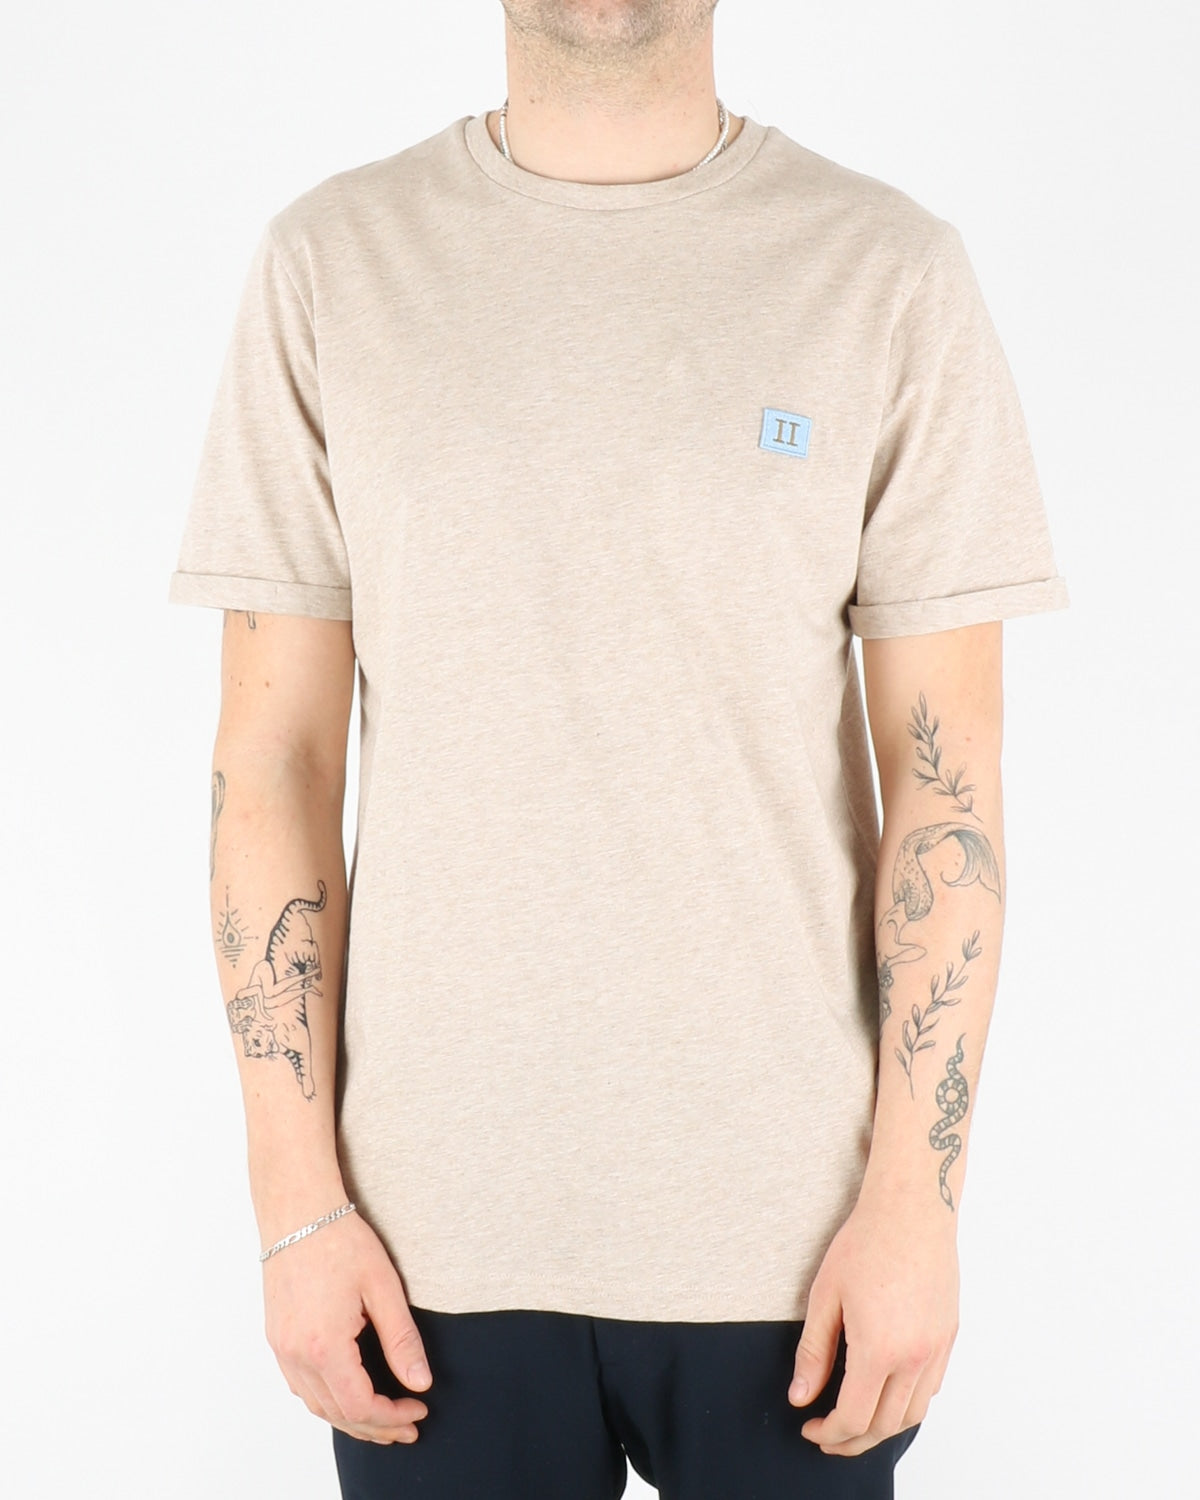 les deux_piece T-Shirt_ight brown melange dusty blue stone brown_1_3